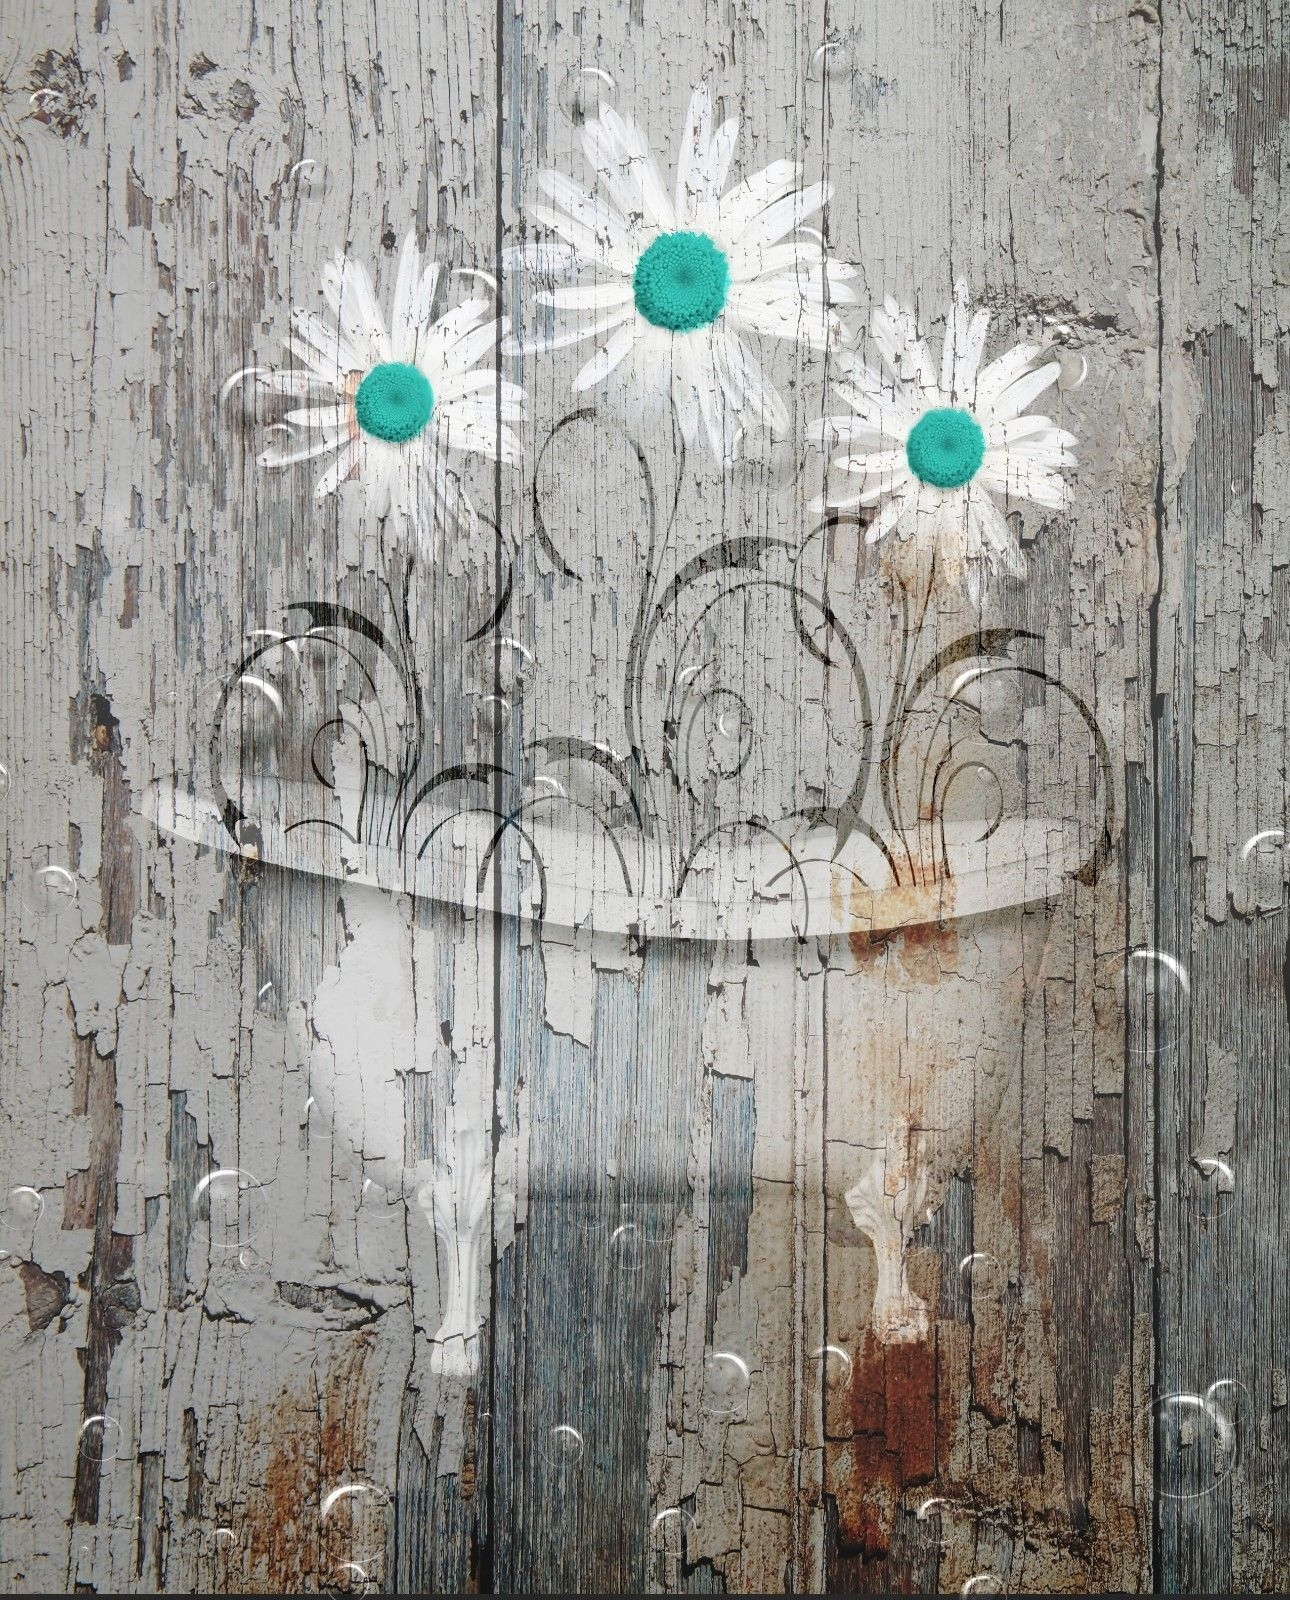 Rustic Distressed Daisy Flowers In Bathtub, Farmhouse Country Wall Pertaining To Newest Country Wall Art (Gallery 20 of 20)